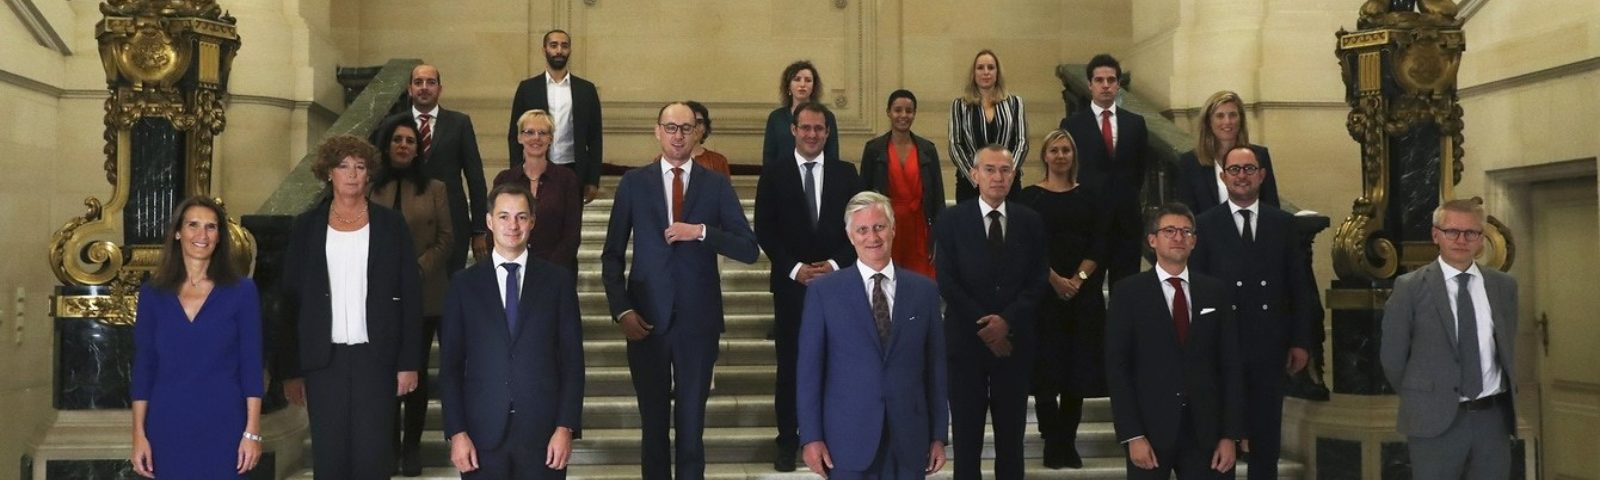 L'accord de coalition examiné